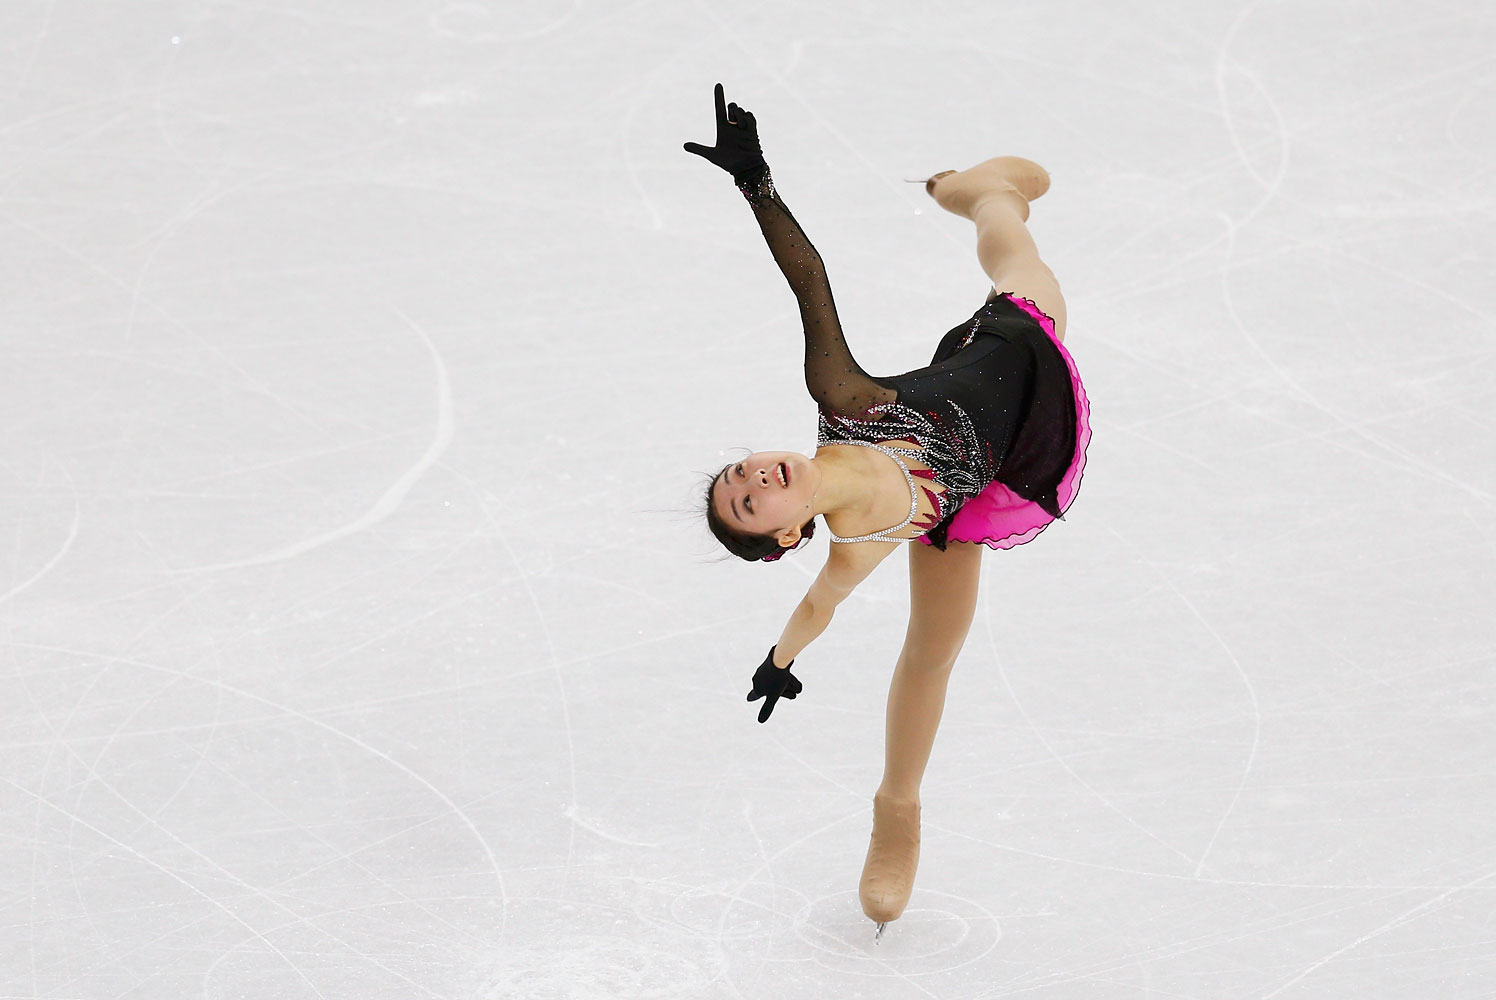 China's Zijun Li competes during the Figure Skating Women's Short Program at the Sochi 2014 Winter Olympics, Feb. 19, 2014